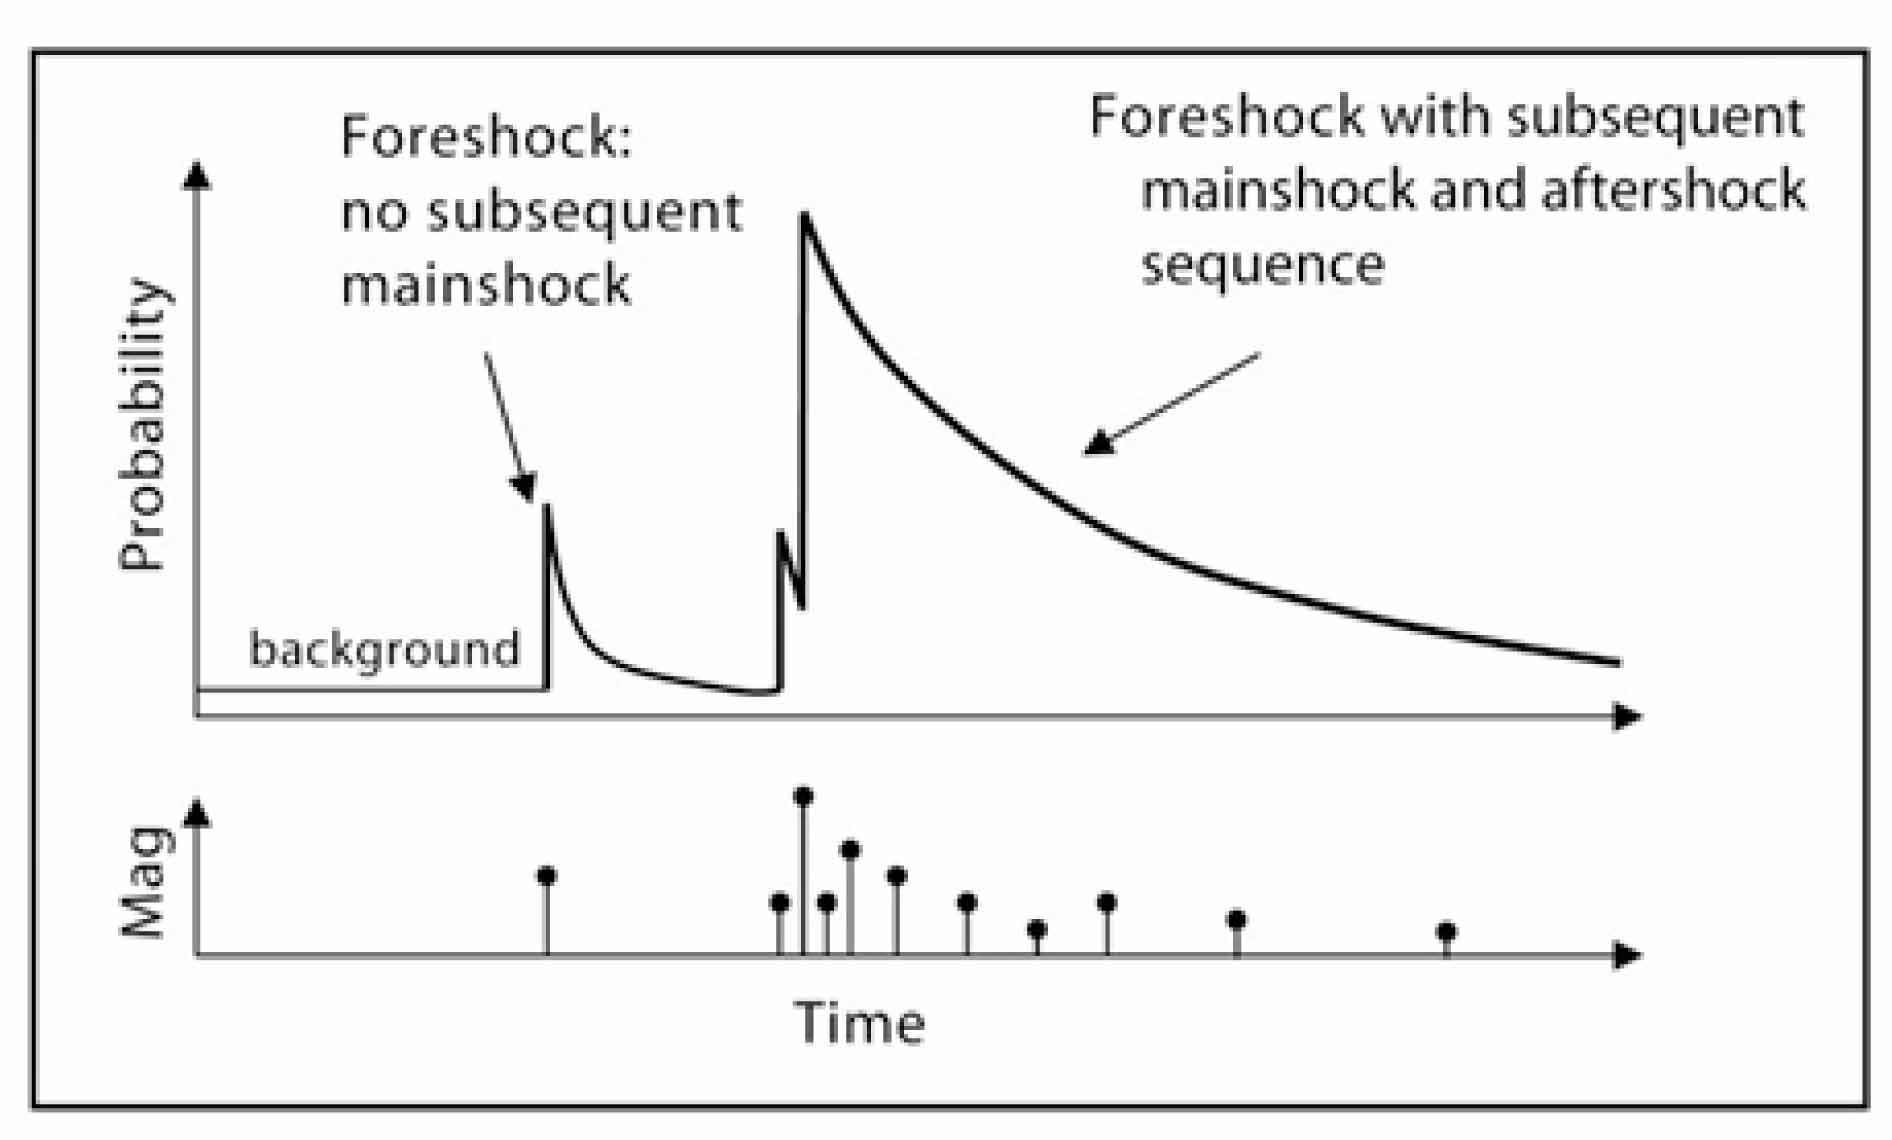 Aftershock Earthquake Diagram Aftershock sequences follow